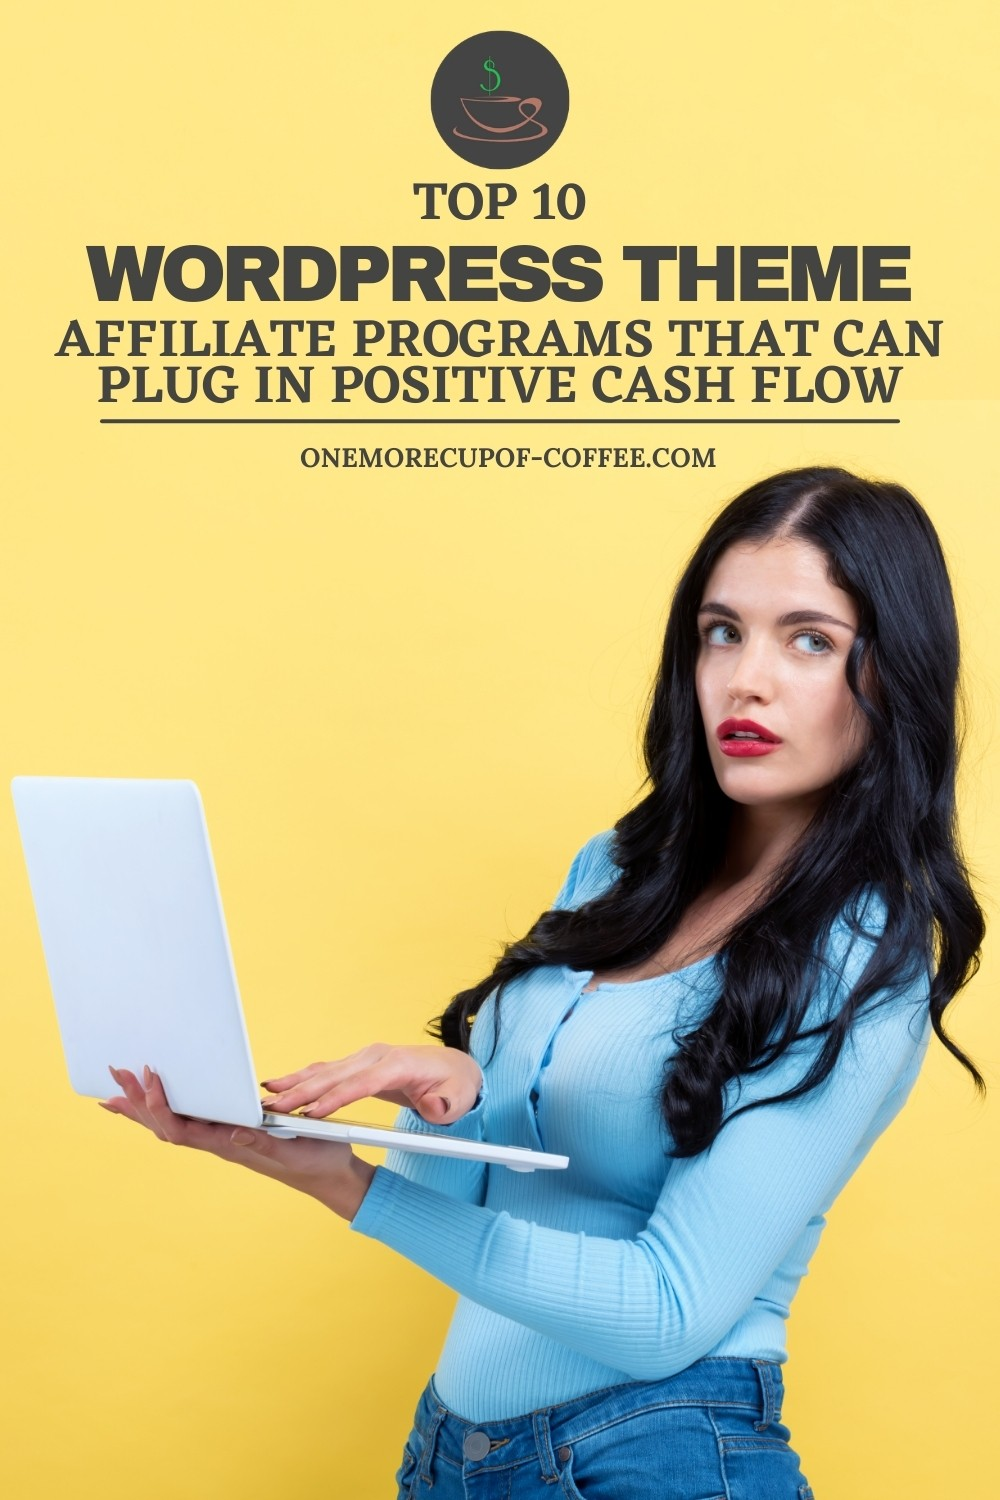 """long-haired woman wearing a blue long-sleeved top and jeans, holding an open laptop, with text overlay """"Top 10 WordPress Theme Affiliate Programs That Can Plug In Positive Cash Flow"""""""